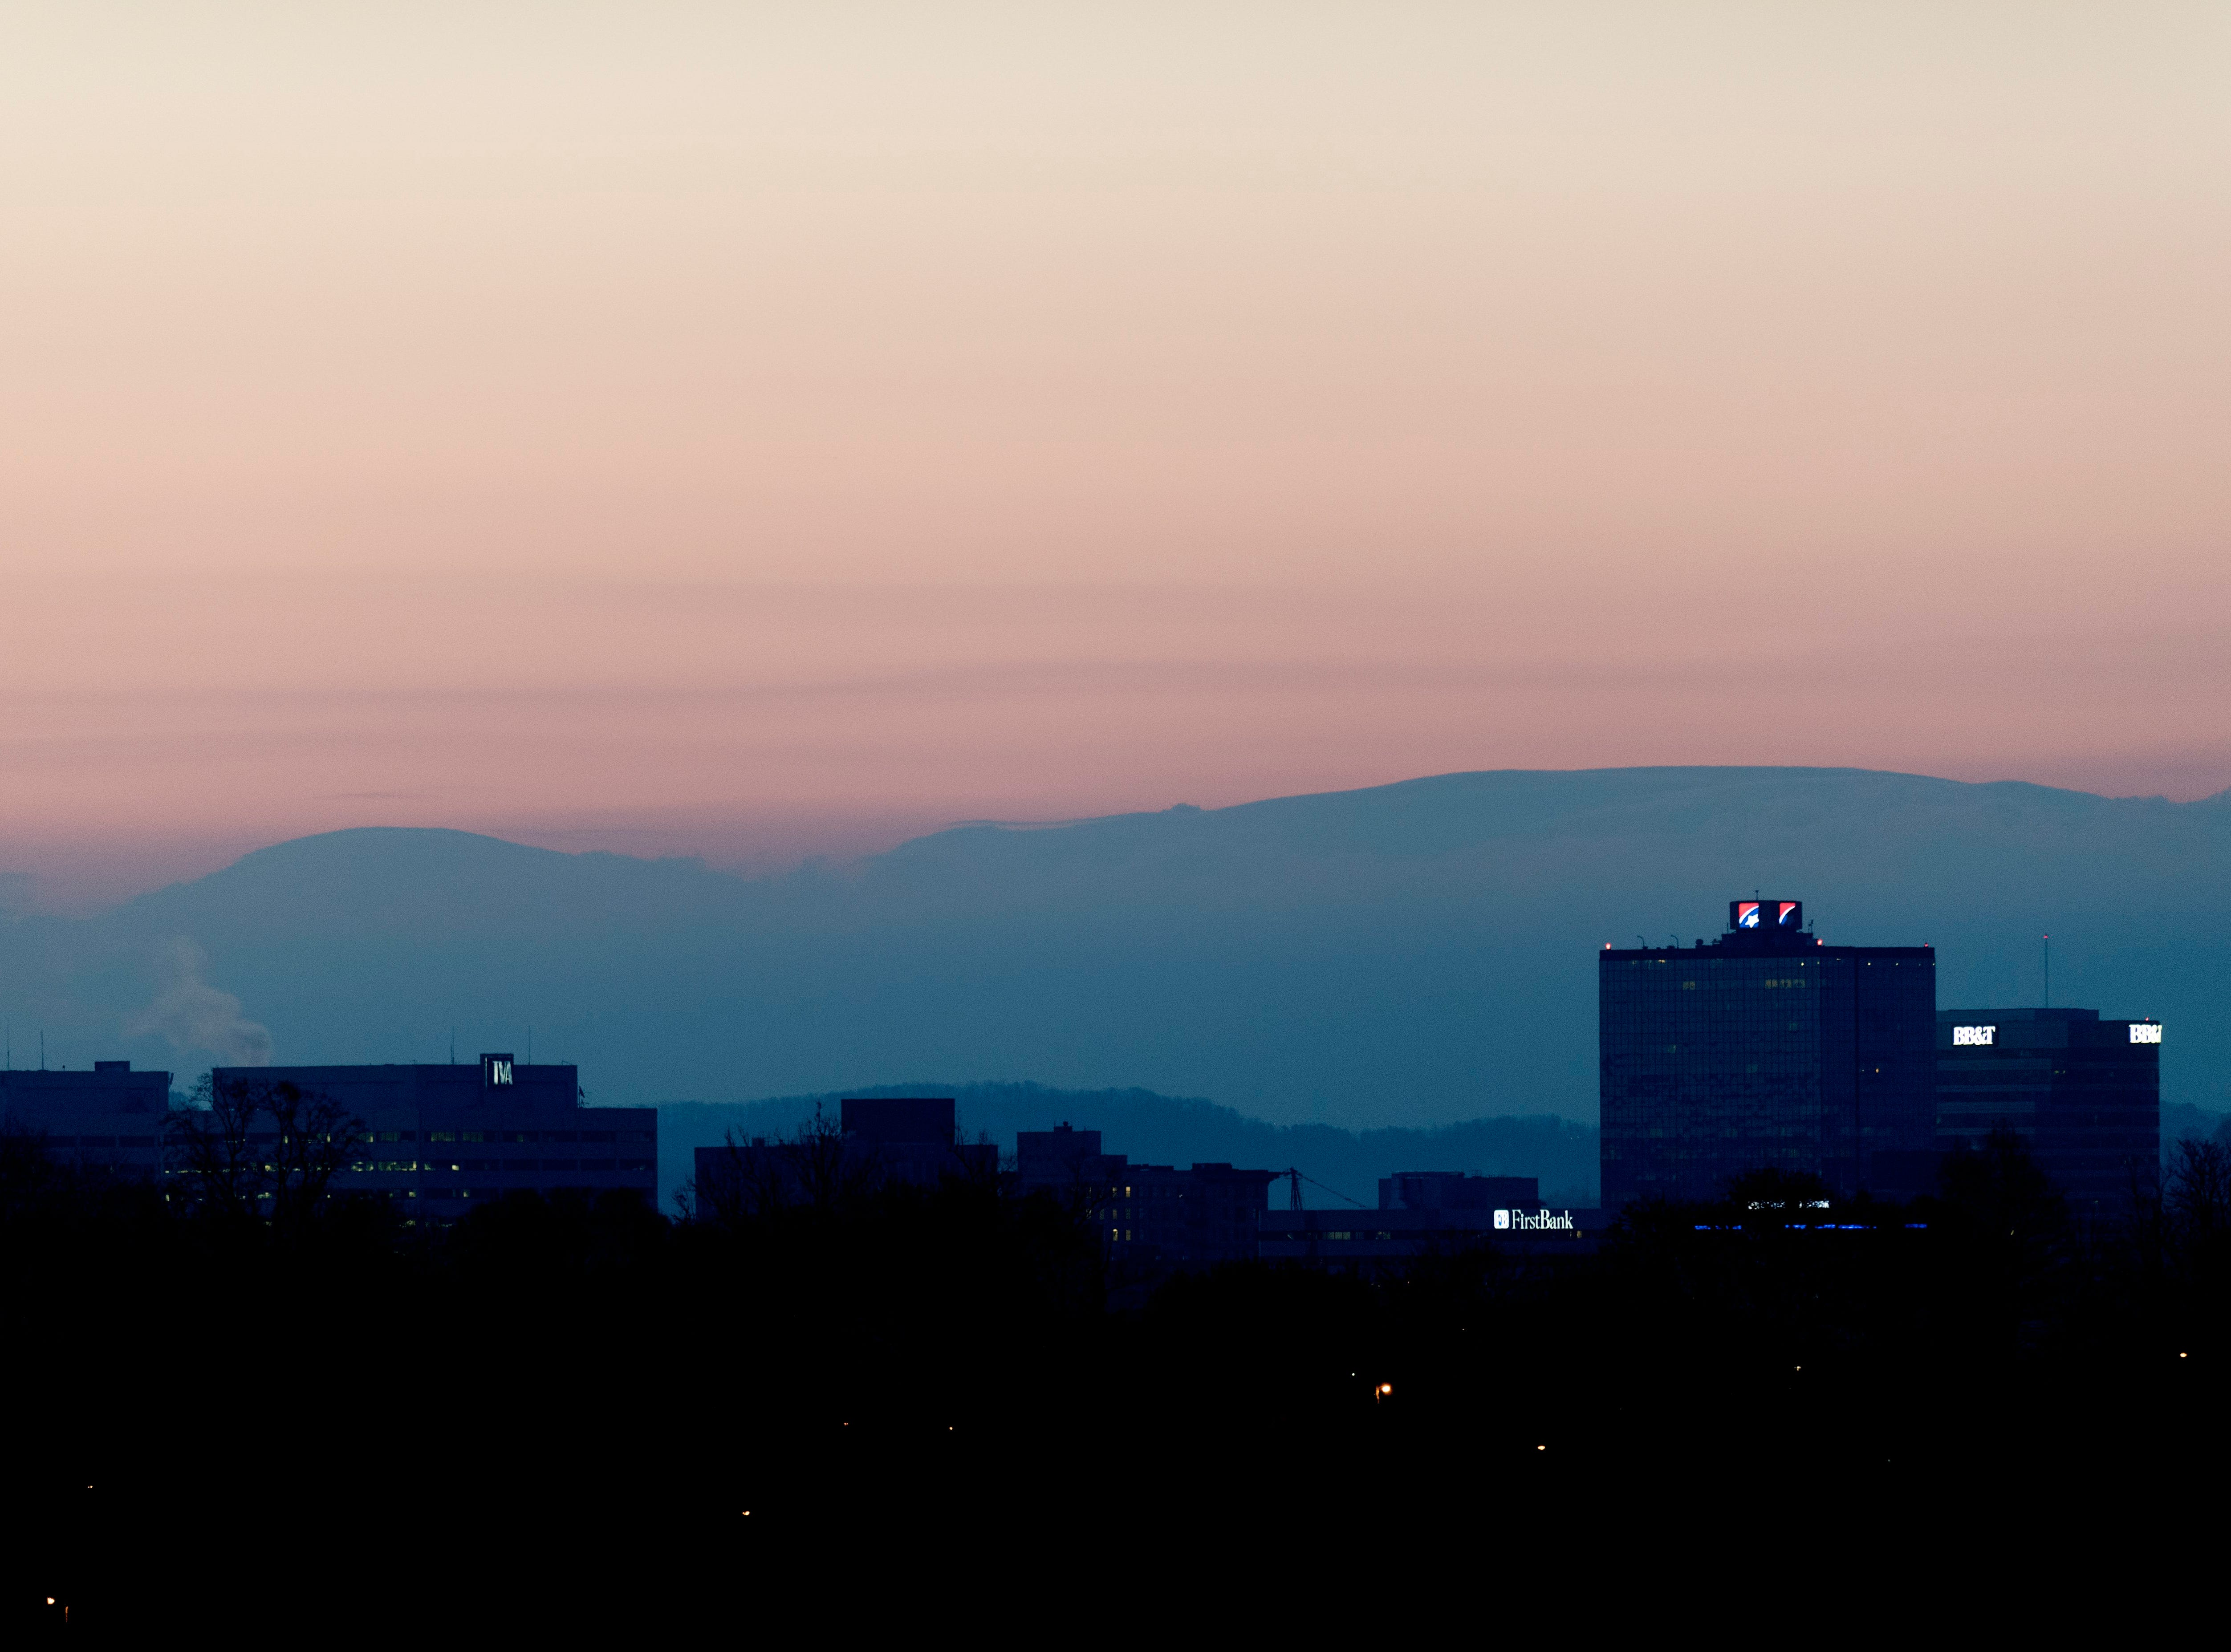 Knoxville skyline with the Smoky Mountains seen in the background.